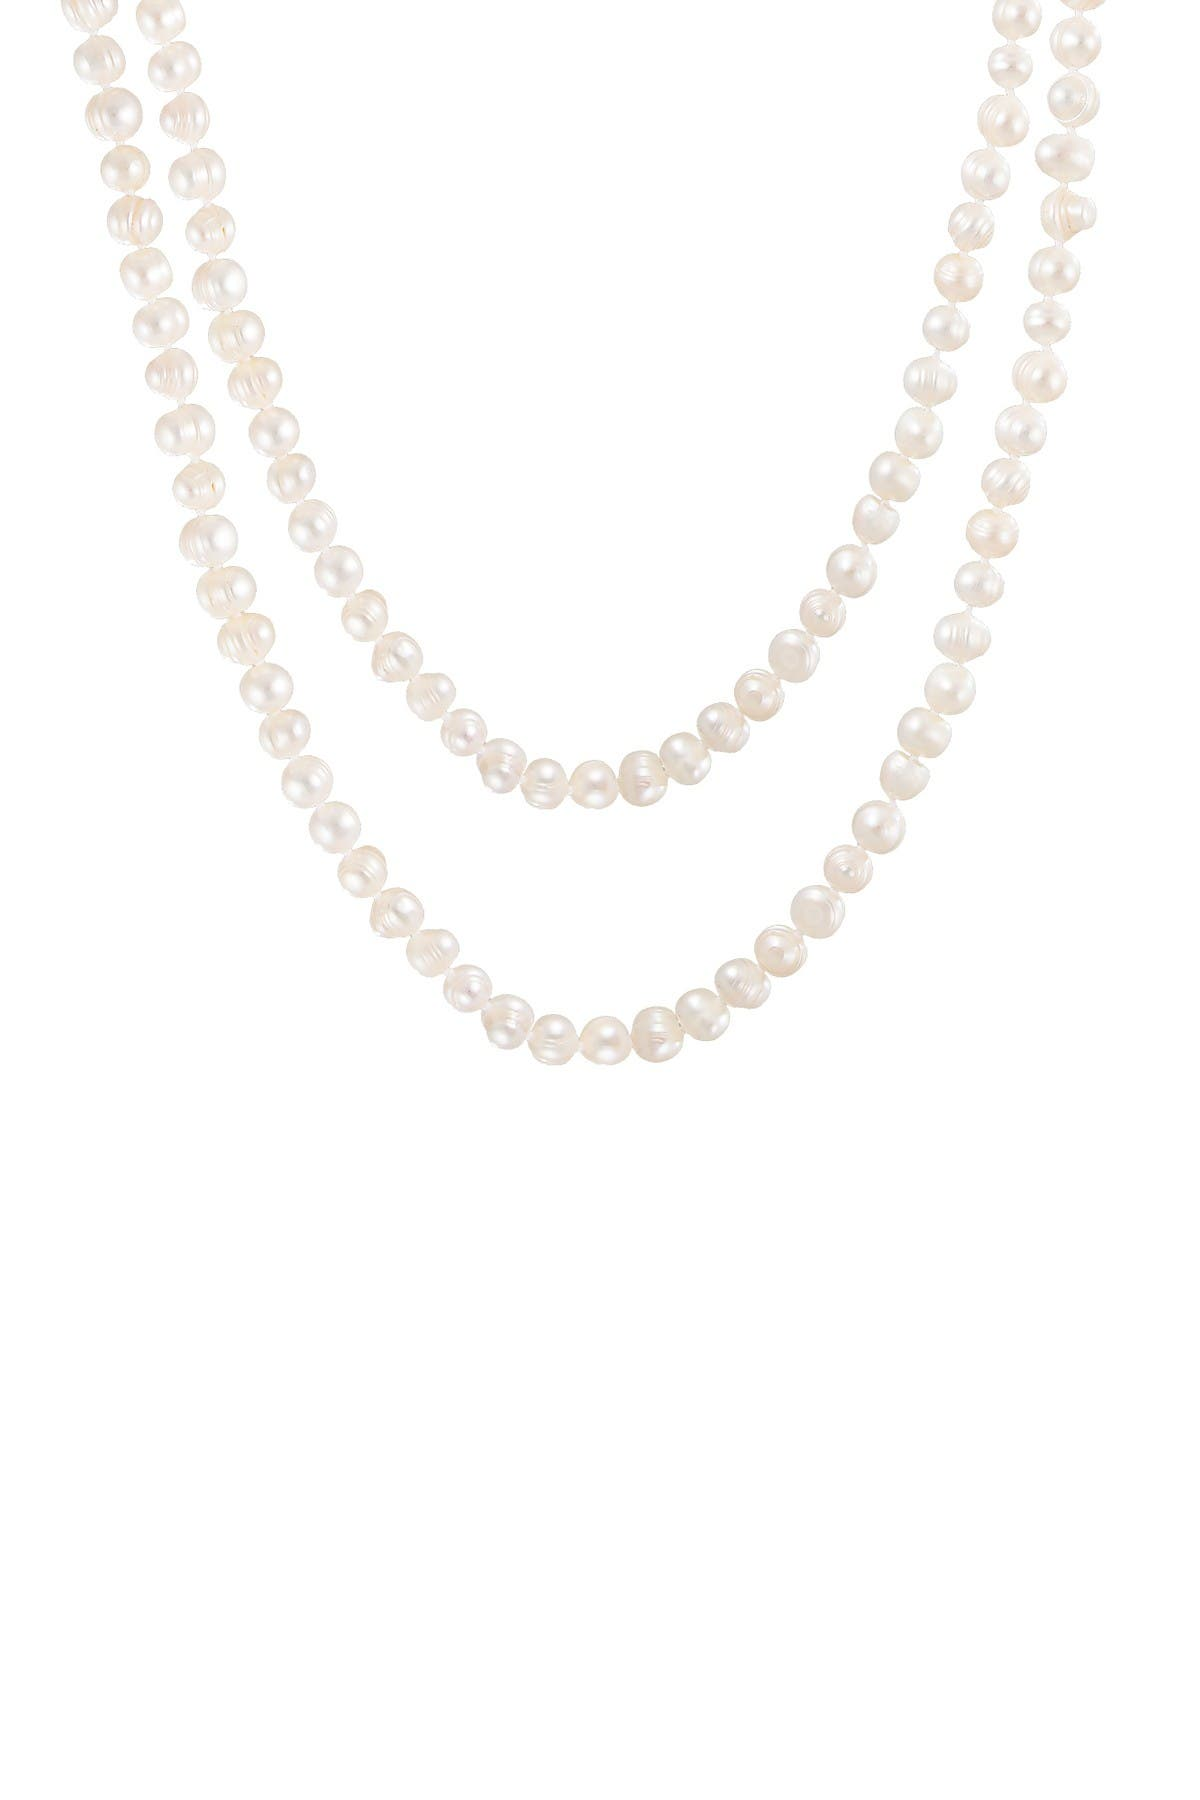 Splendid Pearls 7-8mm Natural White Cultured Freshwater Pearl Necklace at Nordstrom Rack